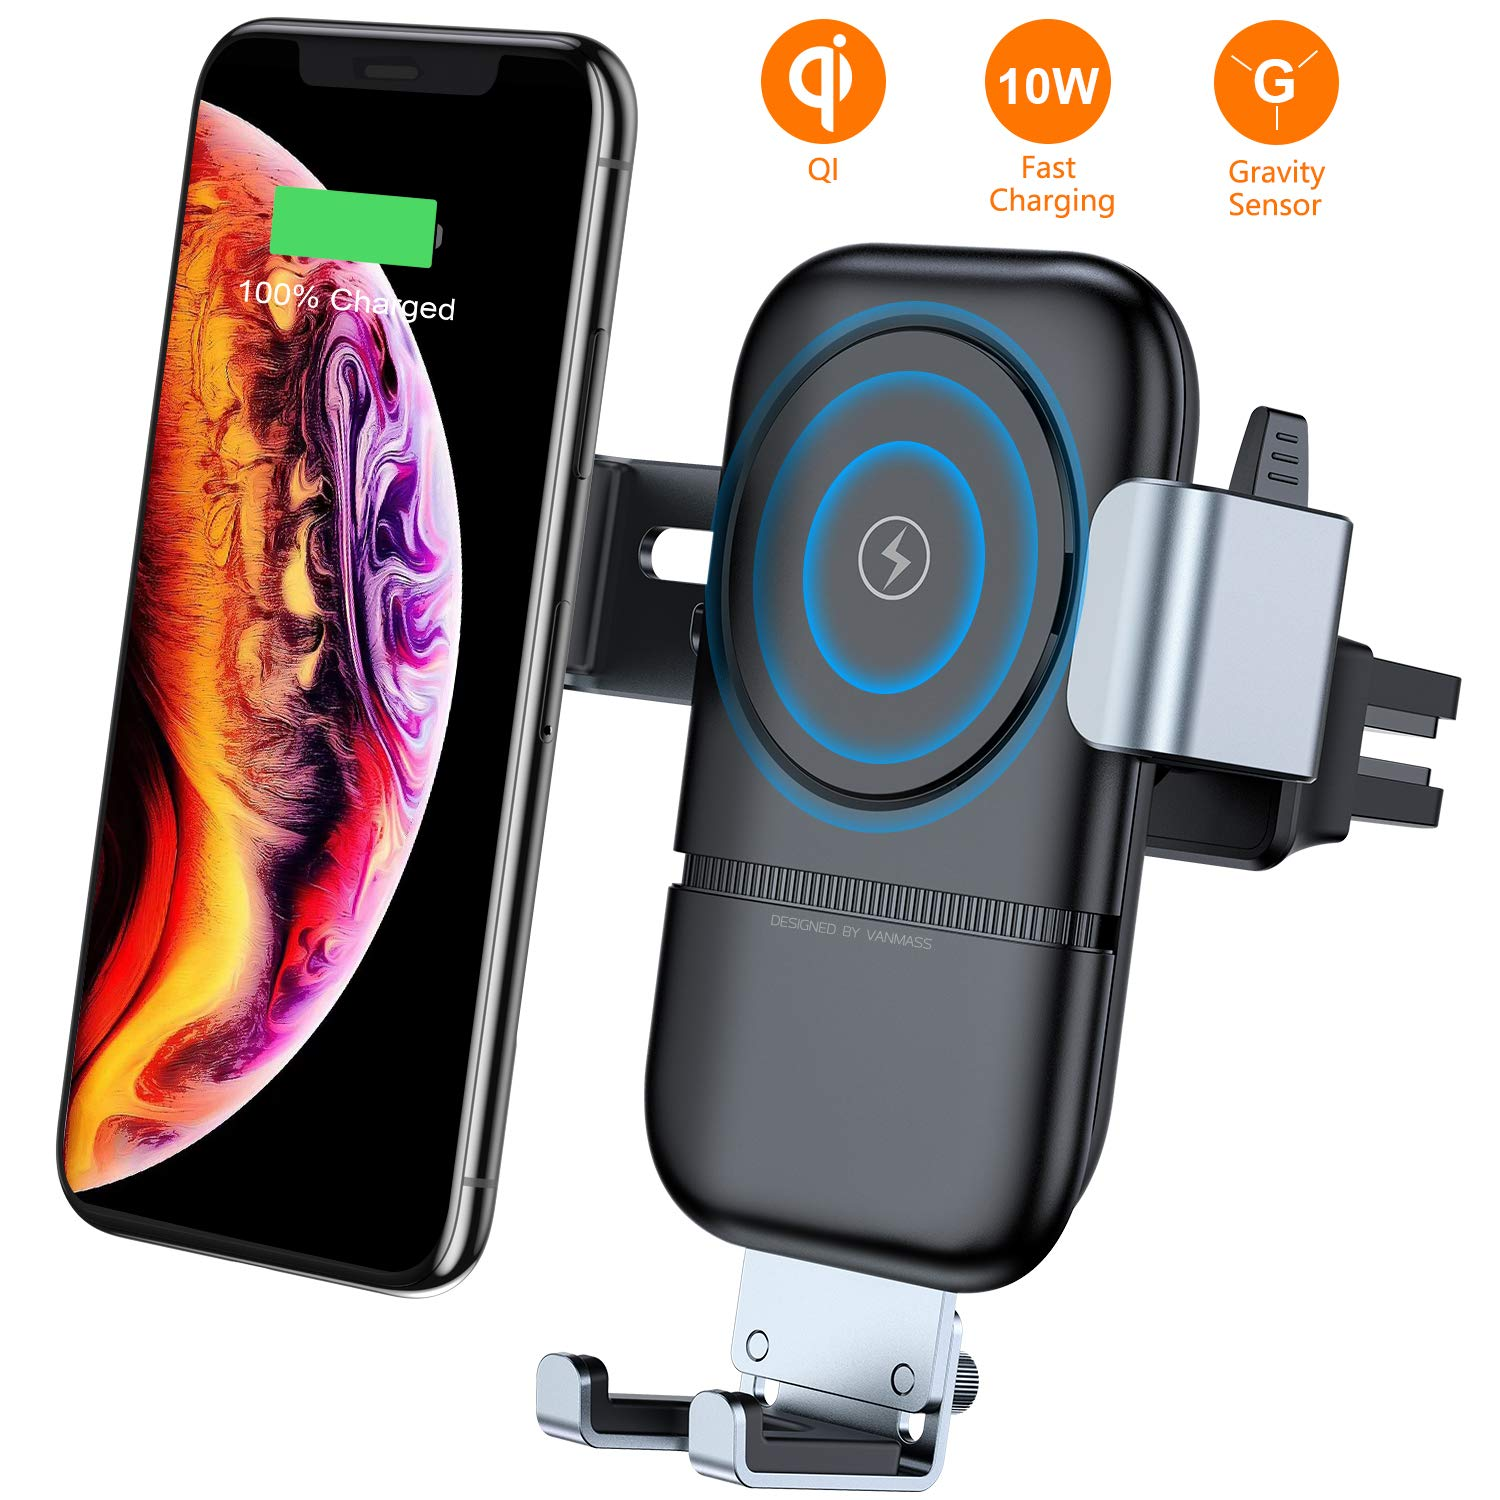 VANMASS Wireless Car Charger, Auto-Clamping Adjustable Gravity Car Mount, 10W Qi Fast Charging Air Vent Phone Holder Compatible with Samsung Galaxy Note 9/8/ S9/ S8,iPhone Xs Max/XR/X 8/8 Plus